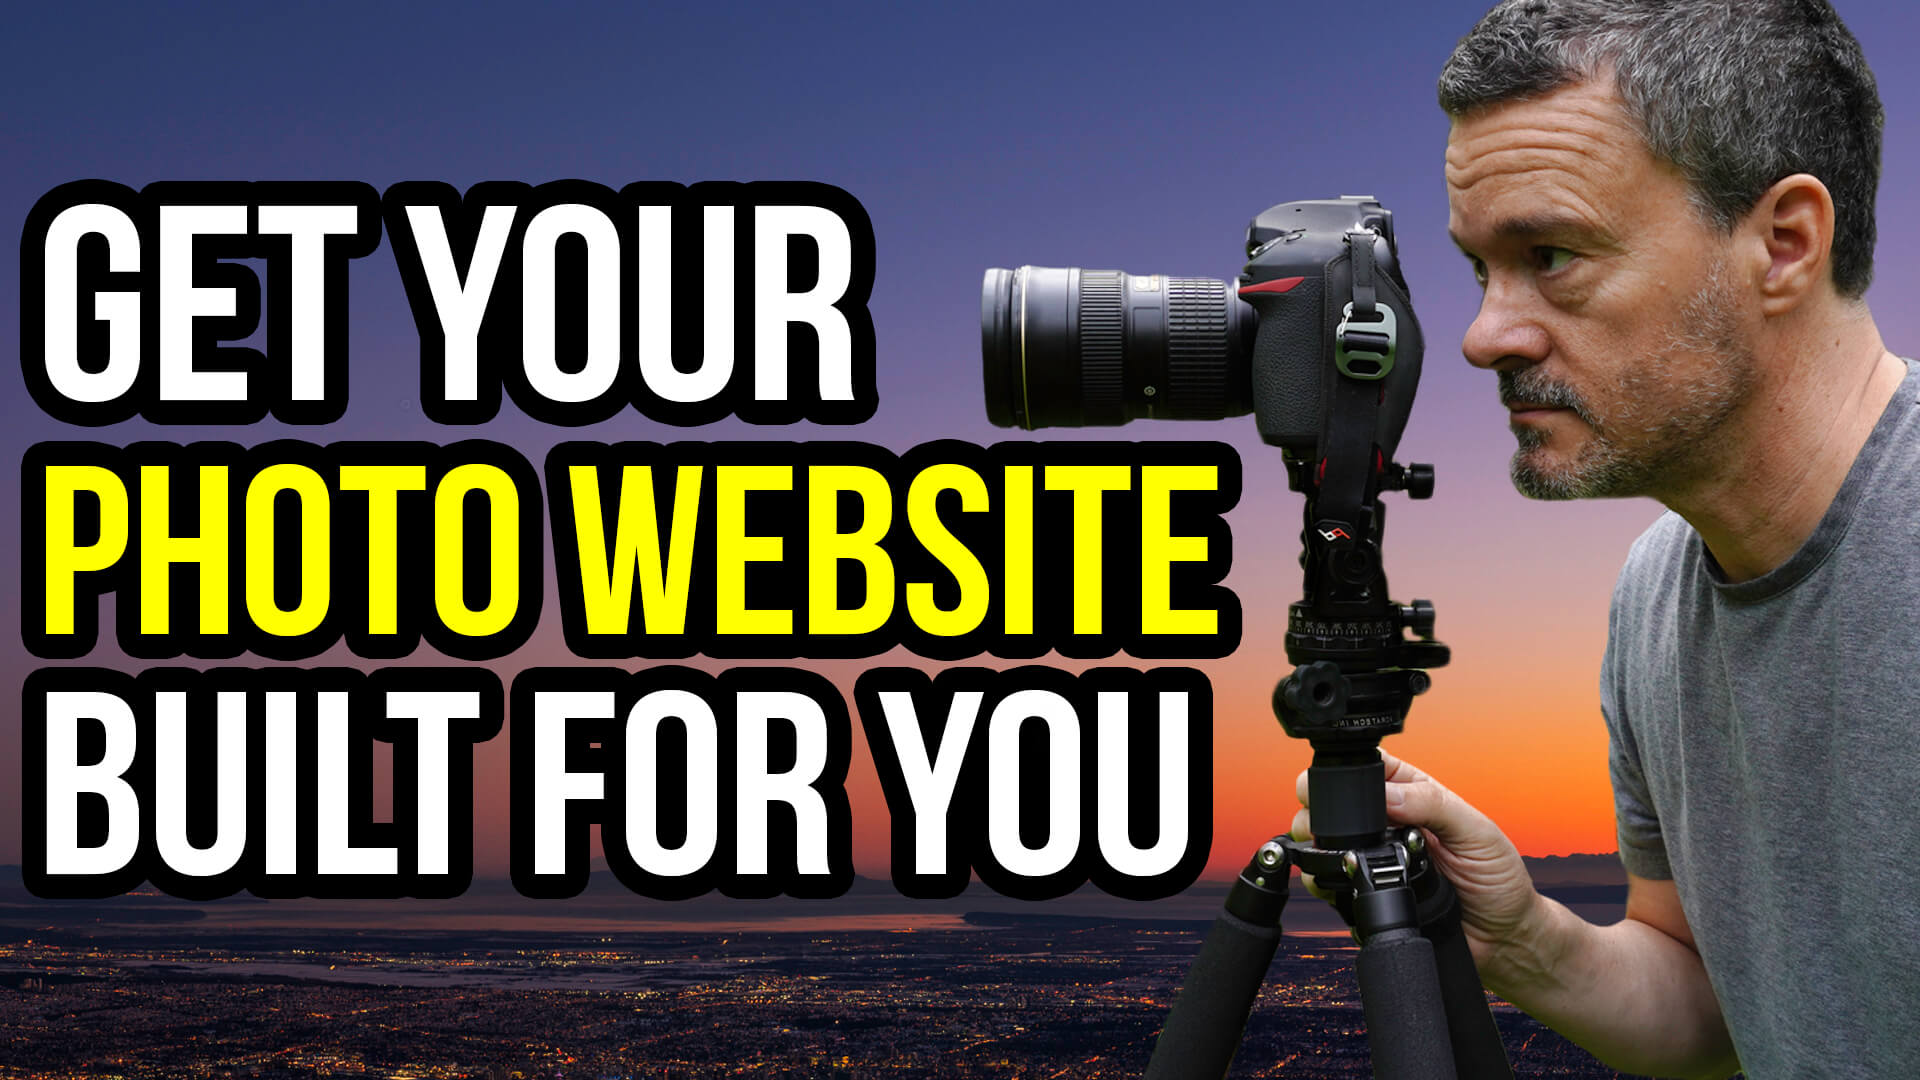 Get your photo website built for you for half price